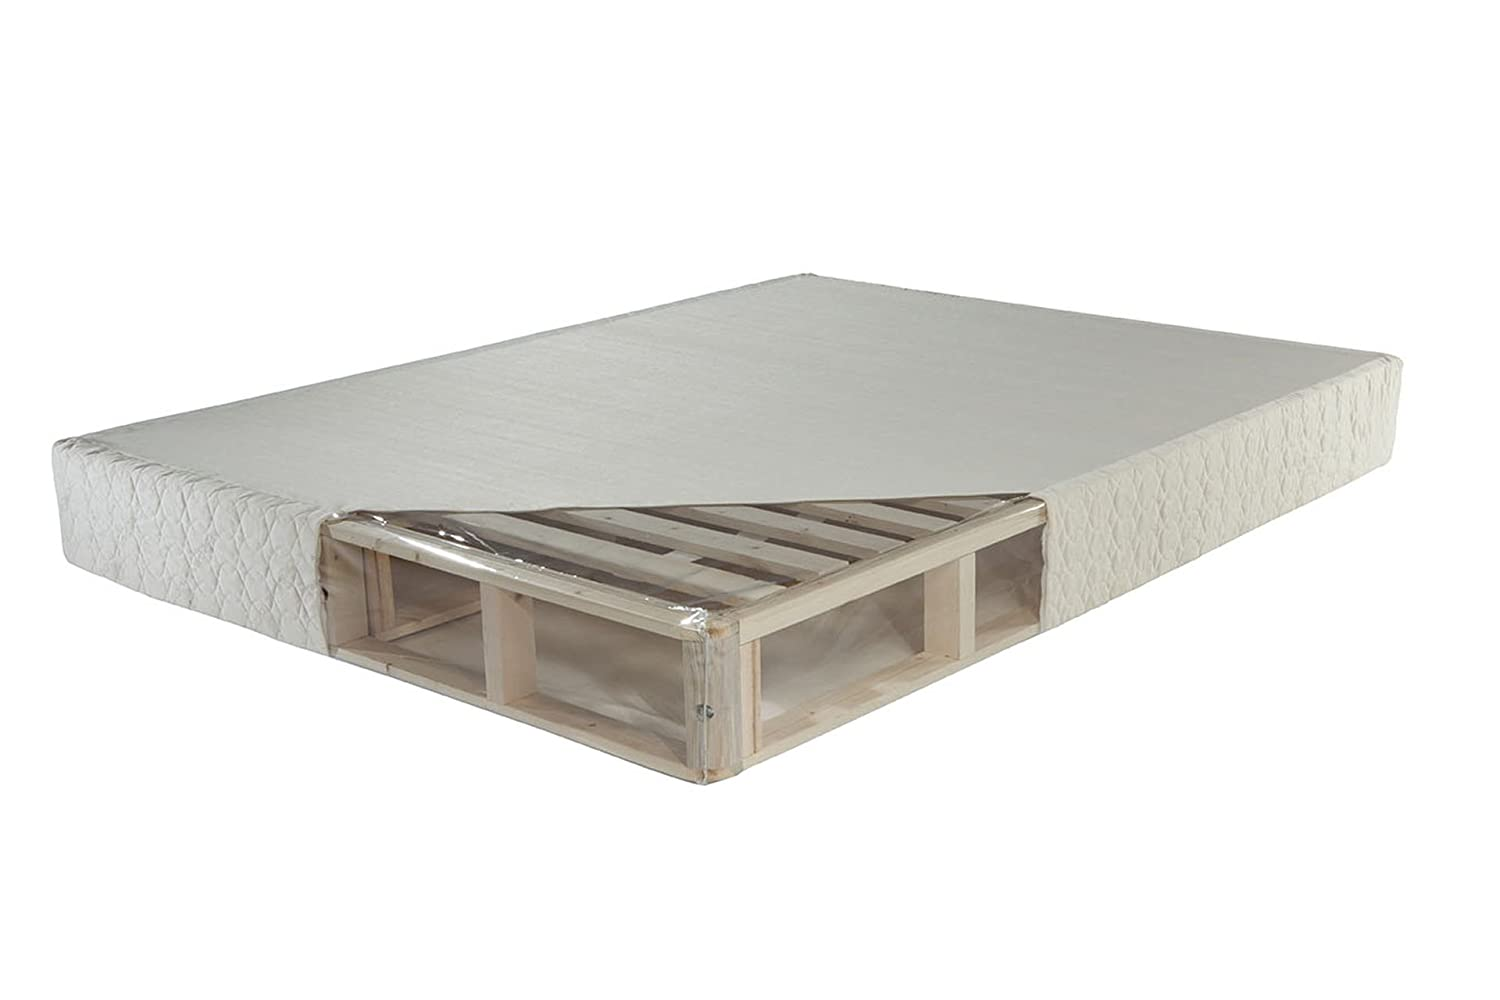 PlushBeds Low Profile Orthopedic Foundation - Twin